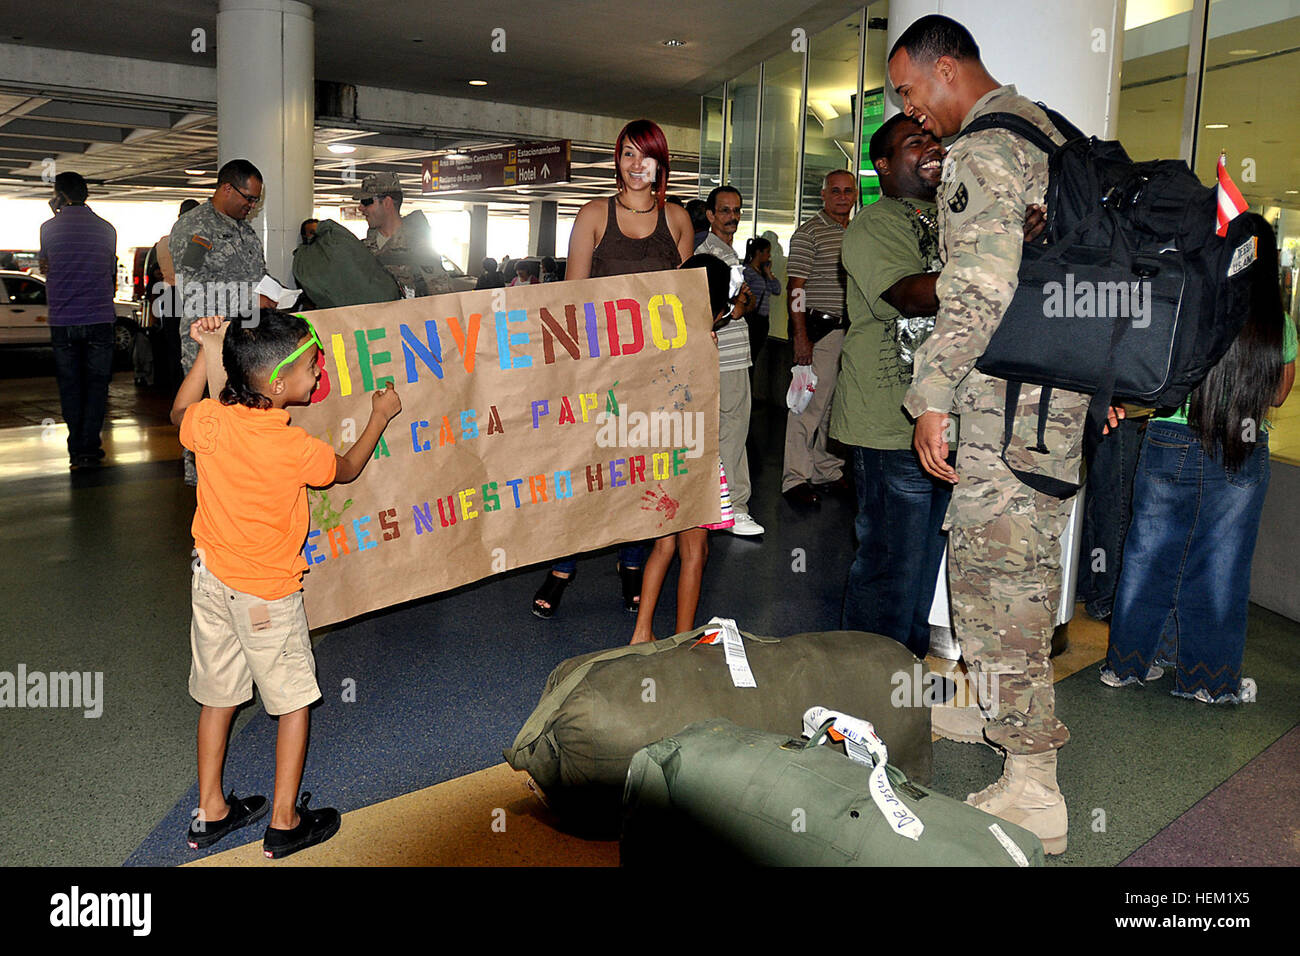 Spc. Orlando De Jesus, of the Puerto Rico Army National Guard 130th Engineer Battalion, reads the banner prepared - Stock Image